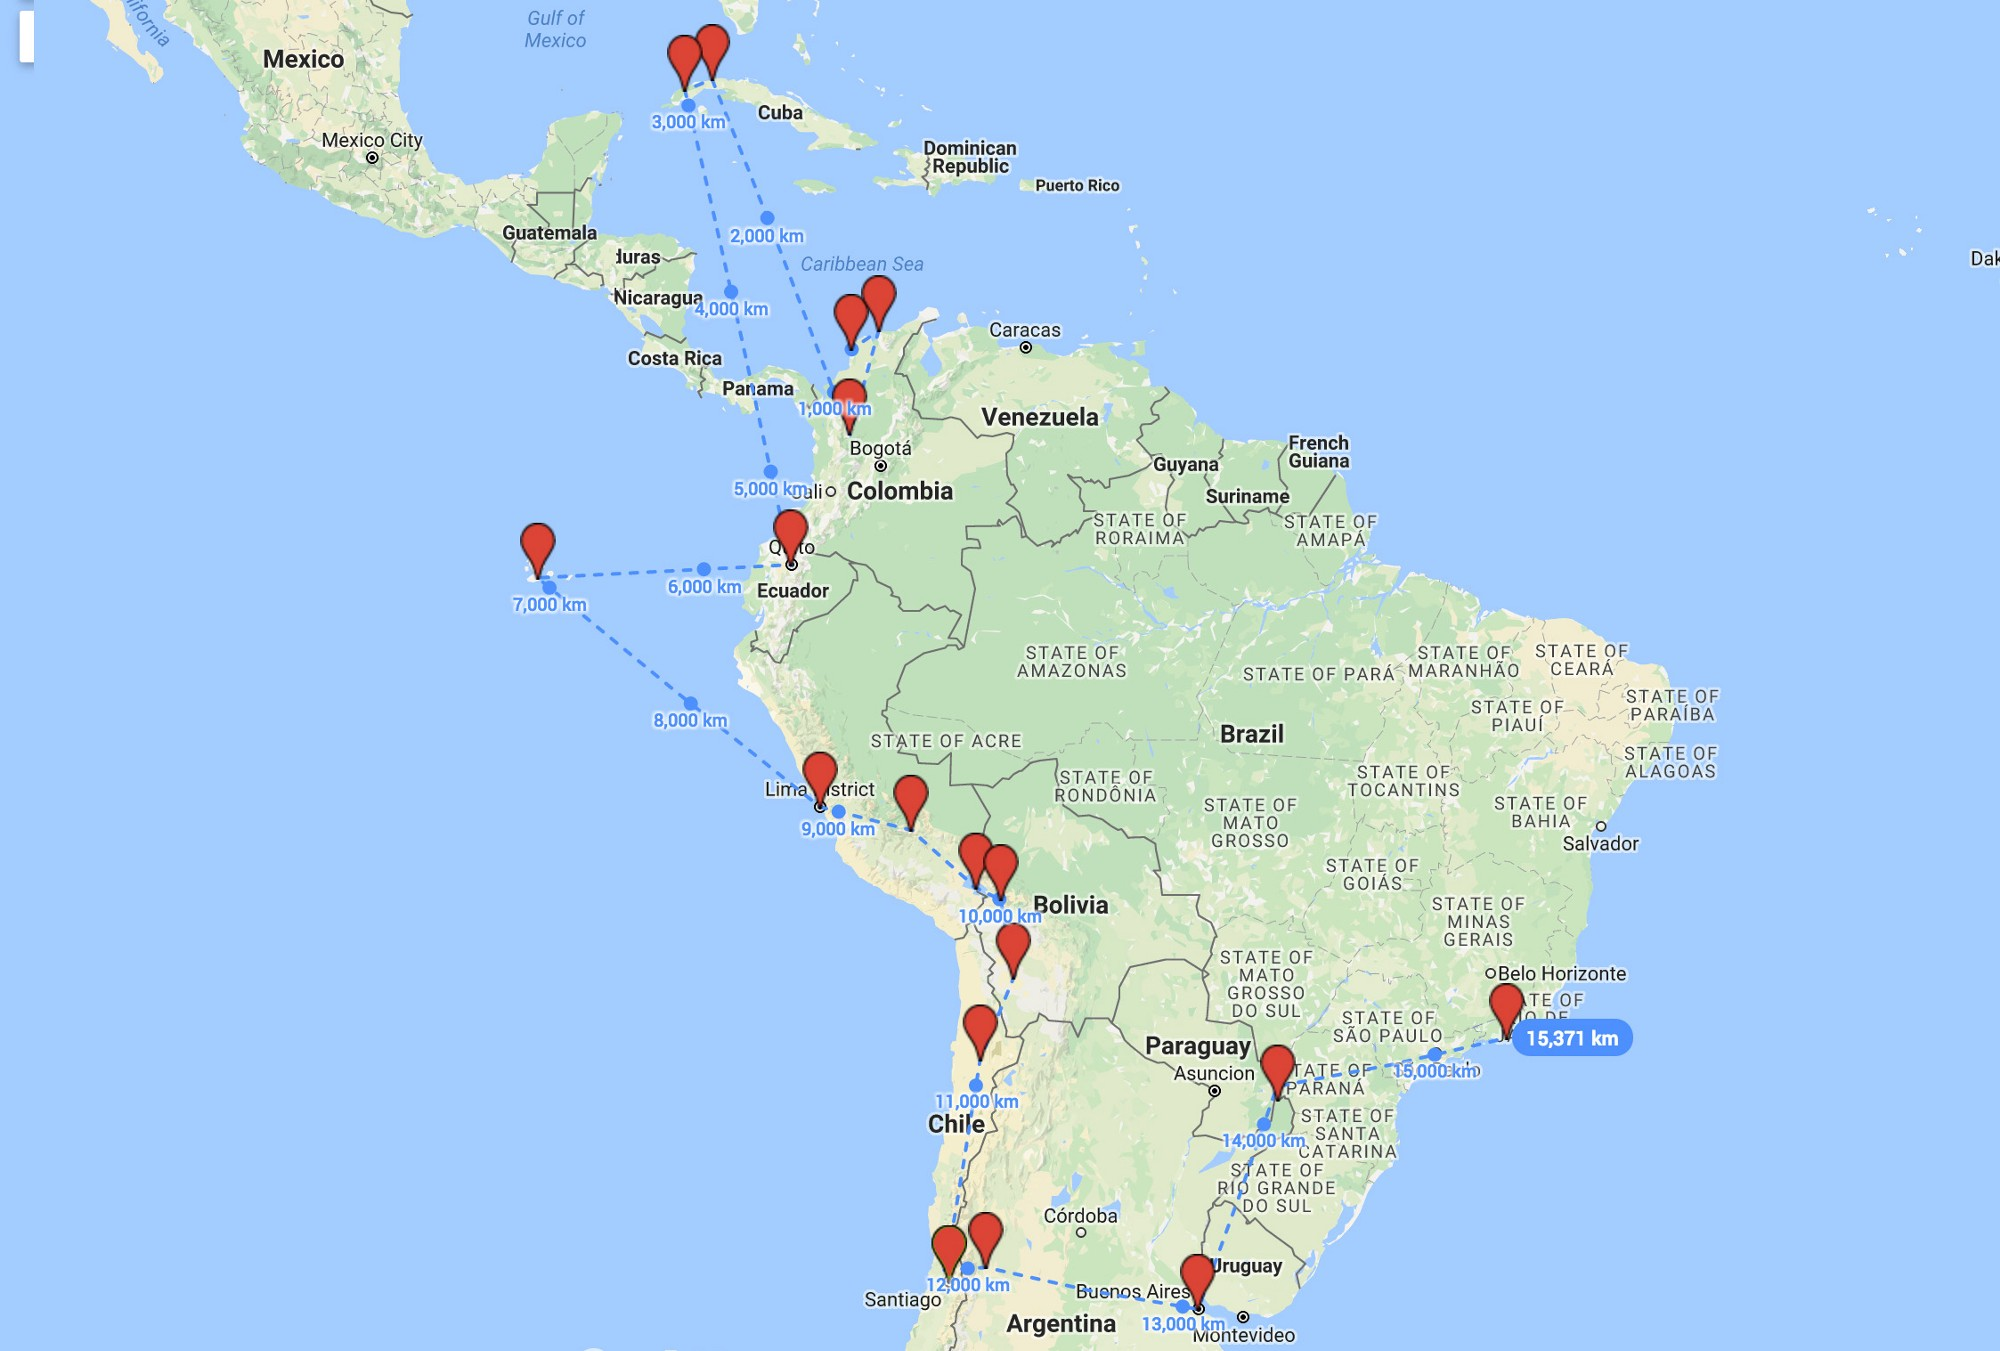 Working remotely south america cuba float what i learnt working remotely across south america cuba gumiabroncs Gallery